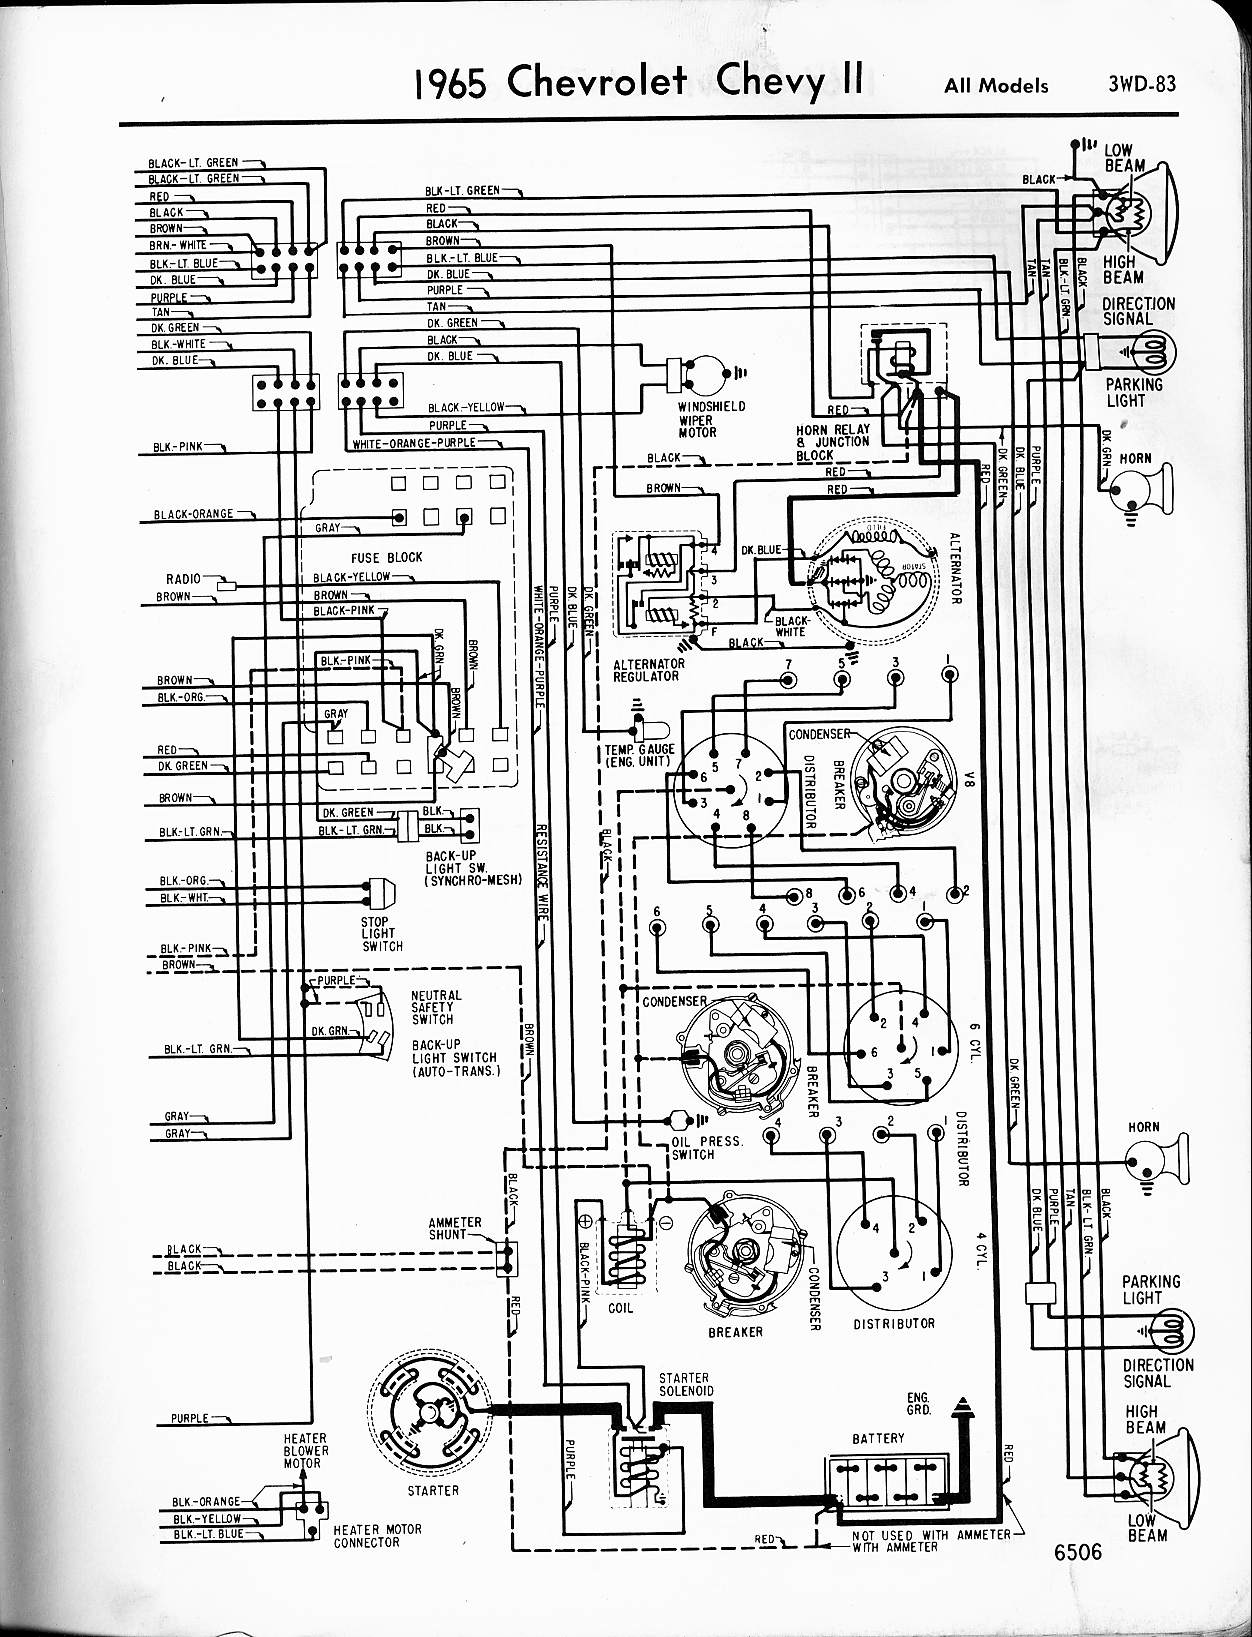 MWireChev65_3WD 083 chevy diagrams 1964 chevy wiring diagram at soozxer.org